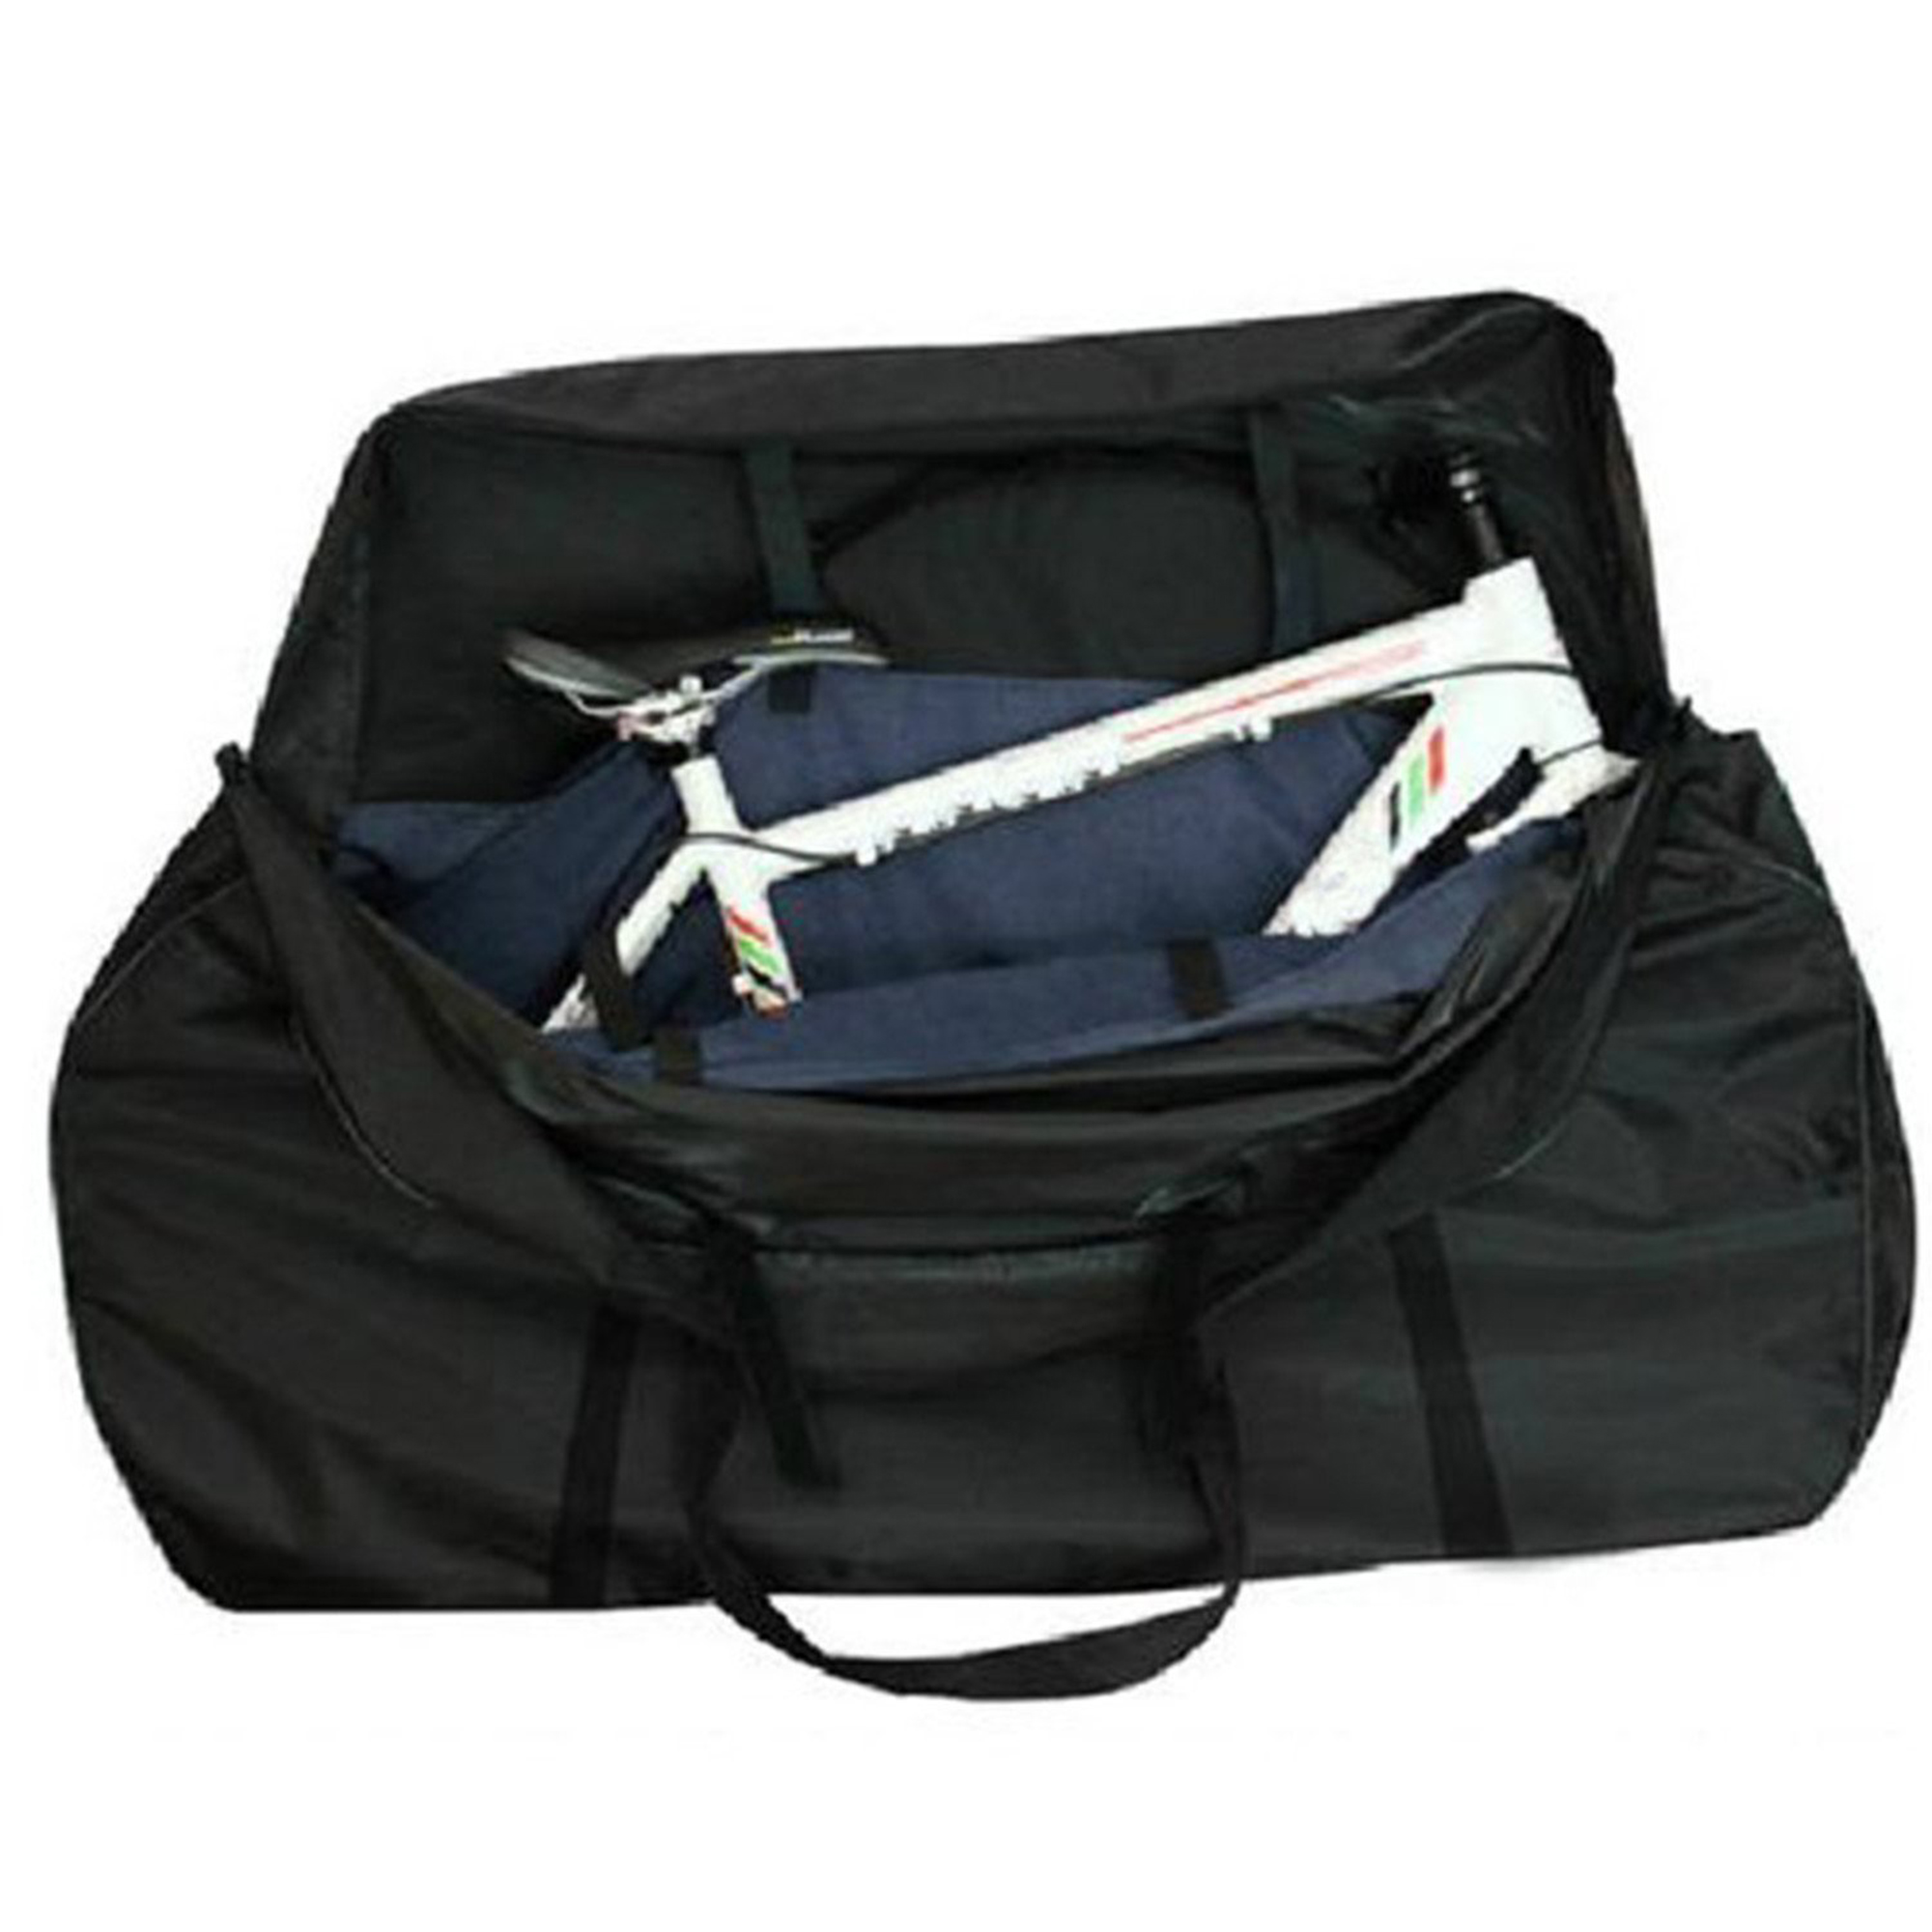 WEANAS Soft Bike Transport Travel Bag Transitote Bicycle Carrying Case by Weanas